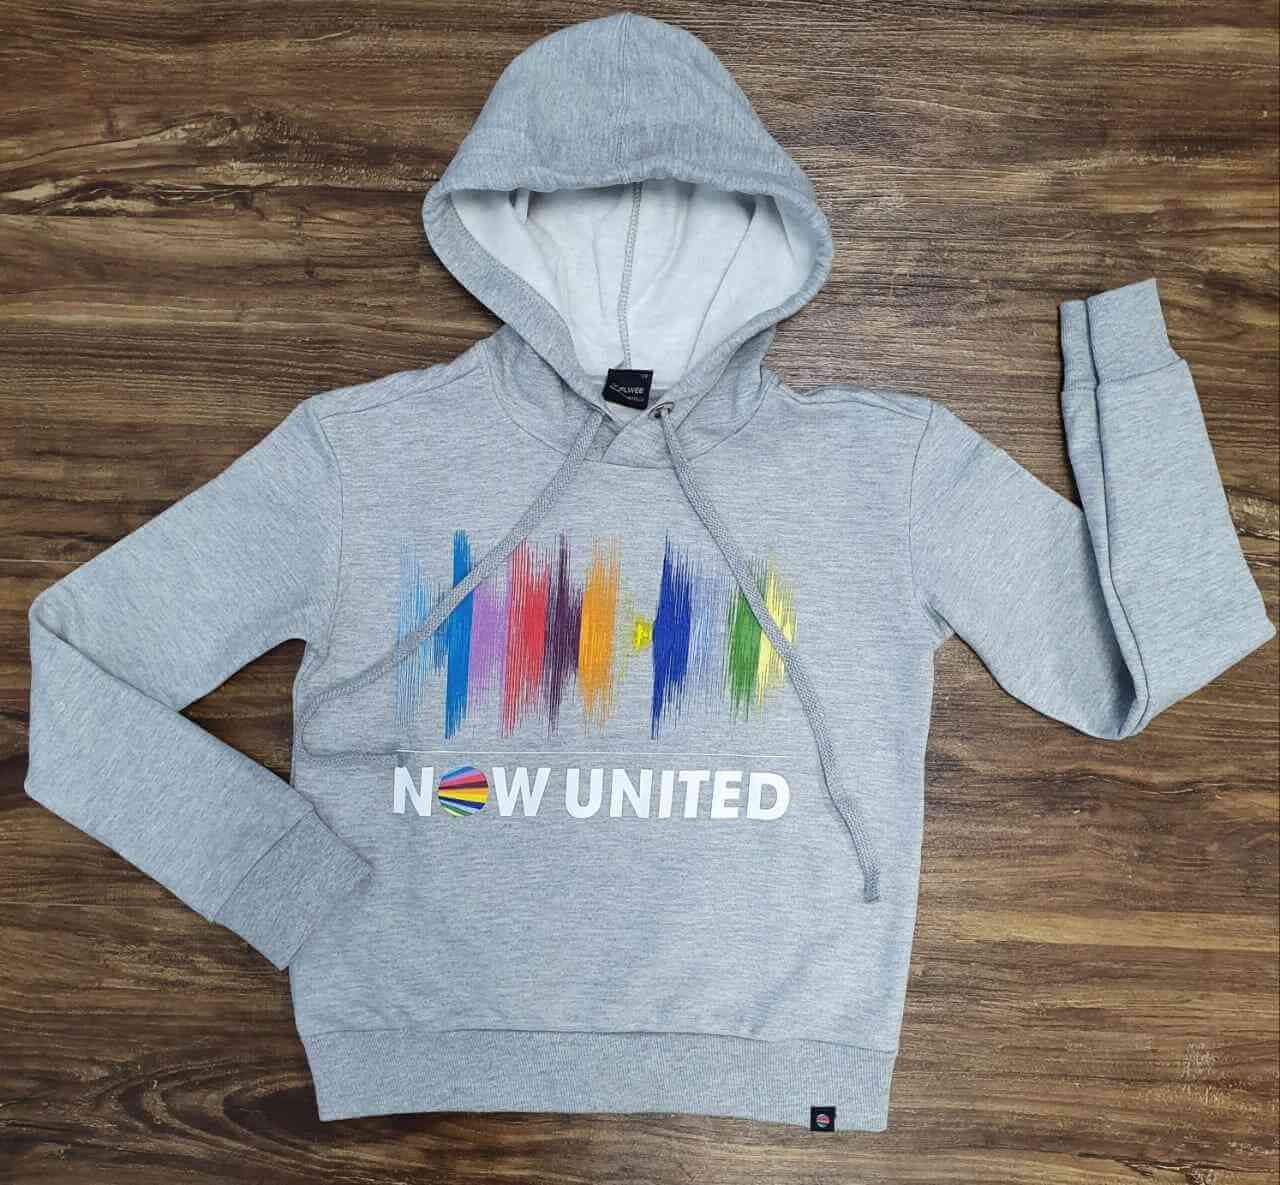 Blusa Moletom Now United Infantil